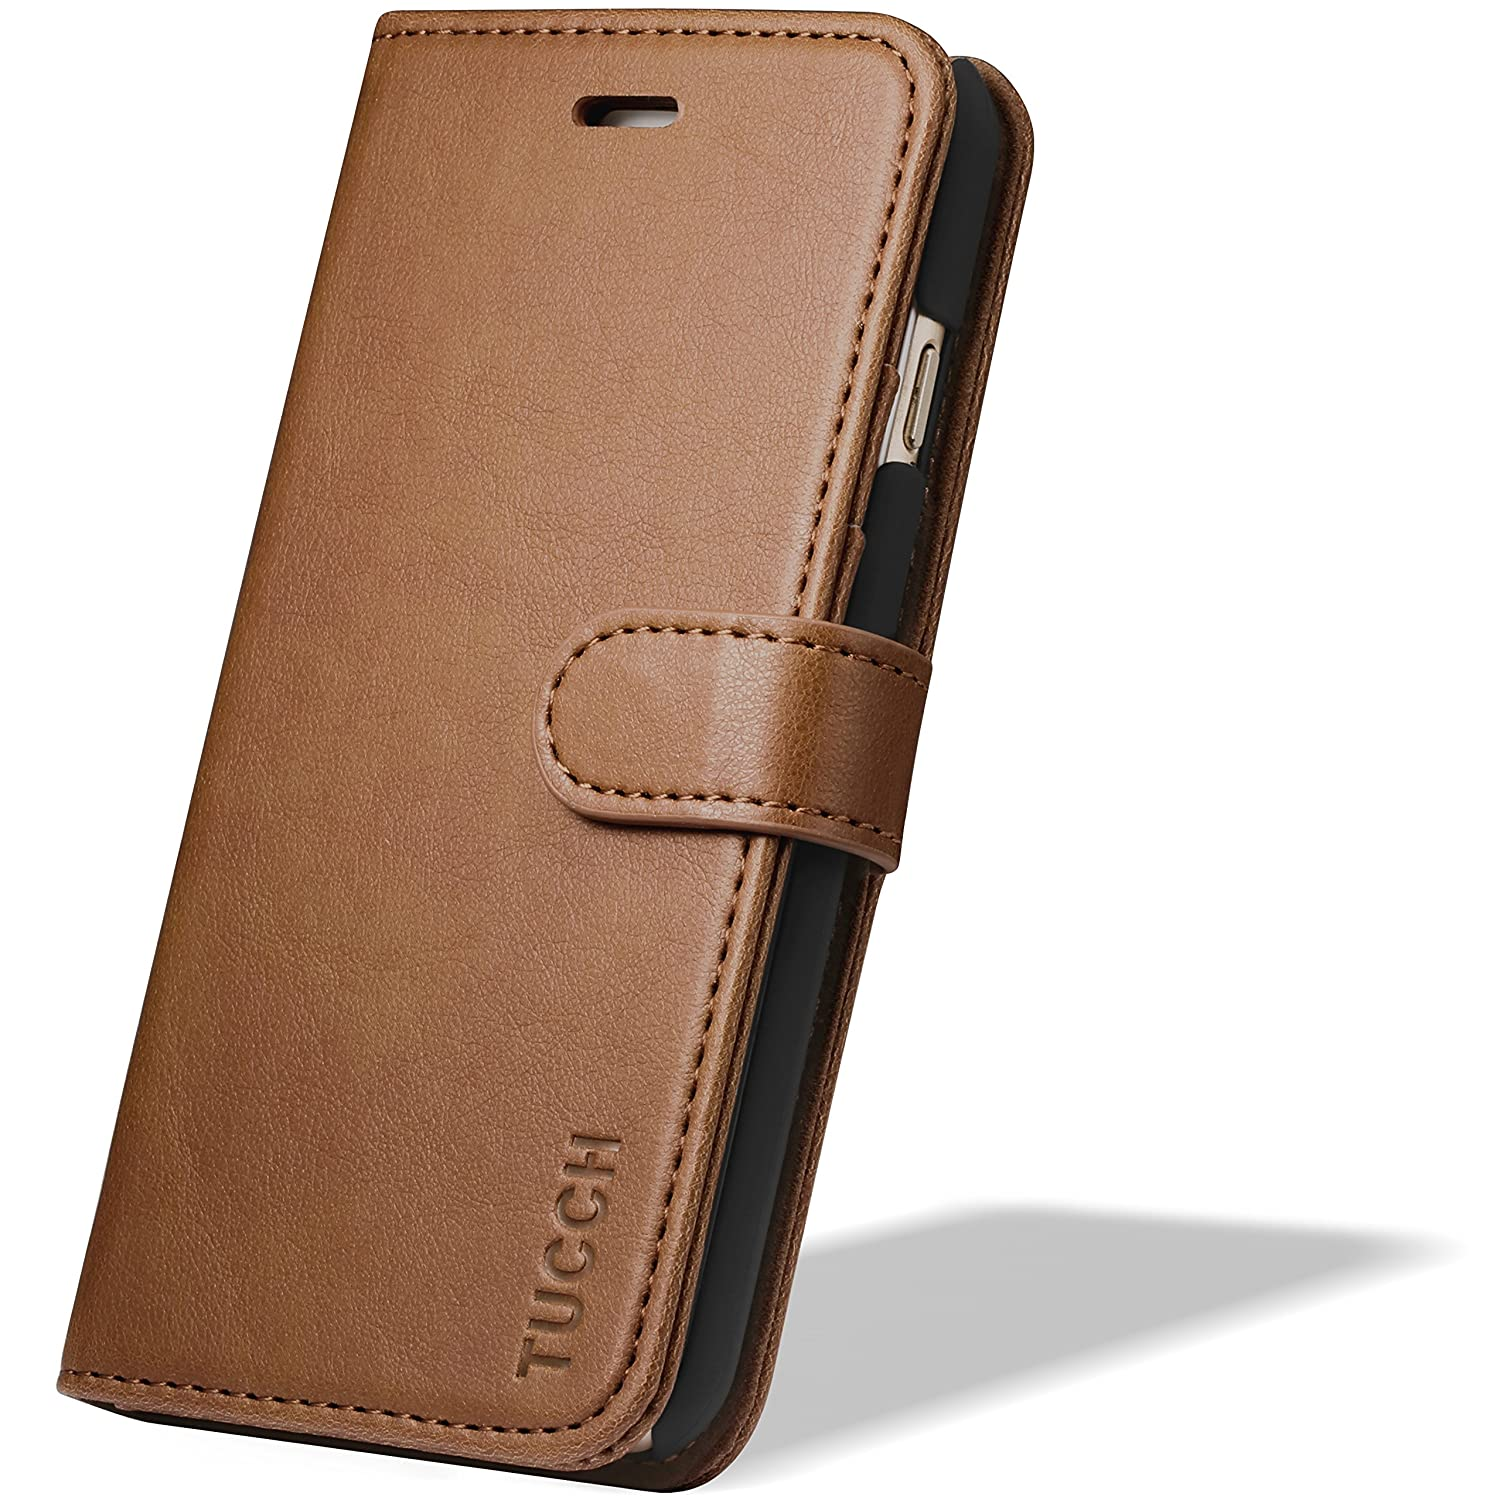 iPhone 6s/6 Case, iPhone 6s/6 Wallet Case, TUCCH Premium PU Leather Flip Folio Wallet Case with Card Slot, Cash Clip, Stand Holder and Magnetic Closure, Brown and Blue